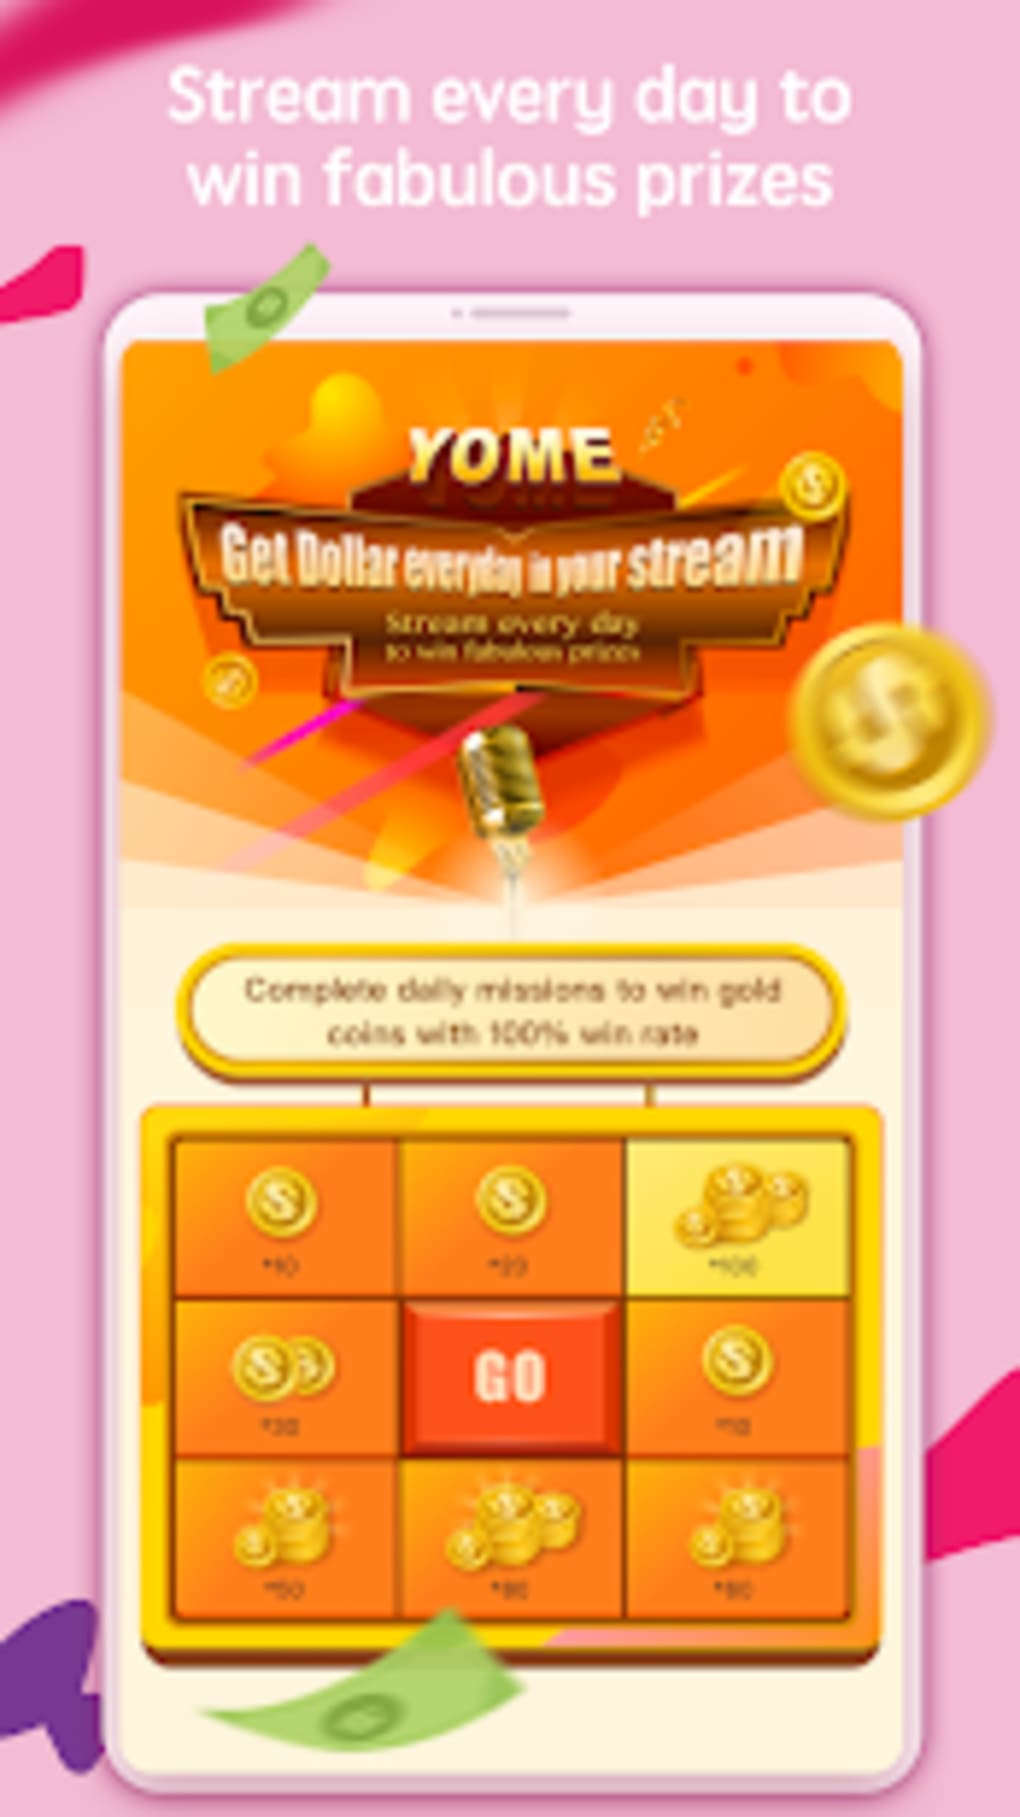 Yome Live for Android - Download